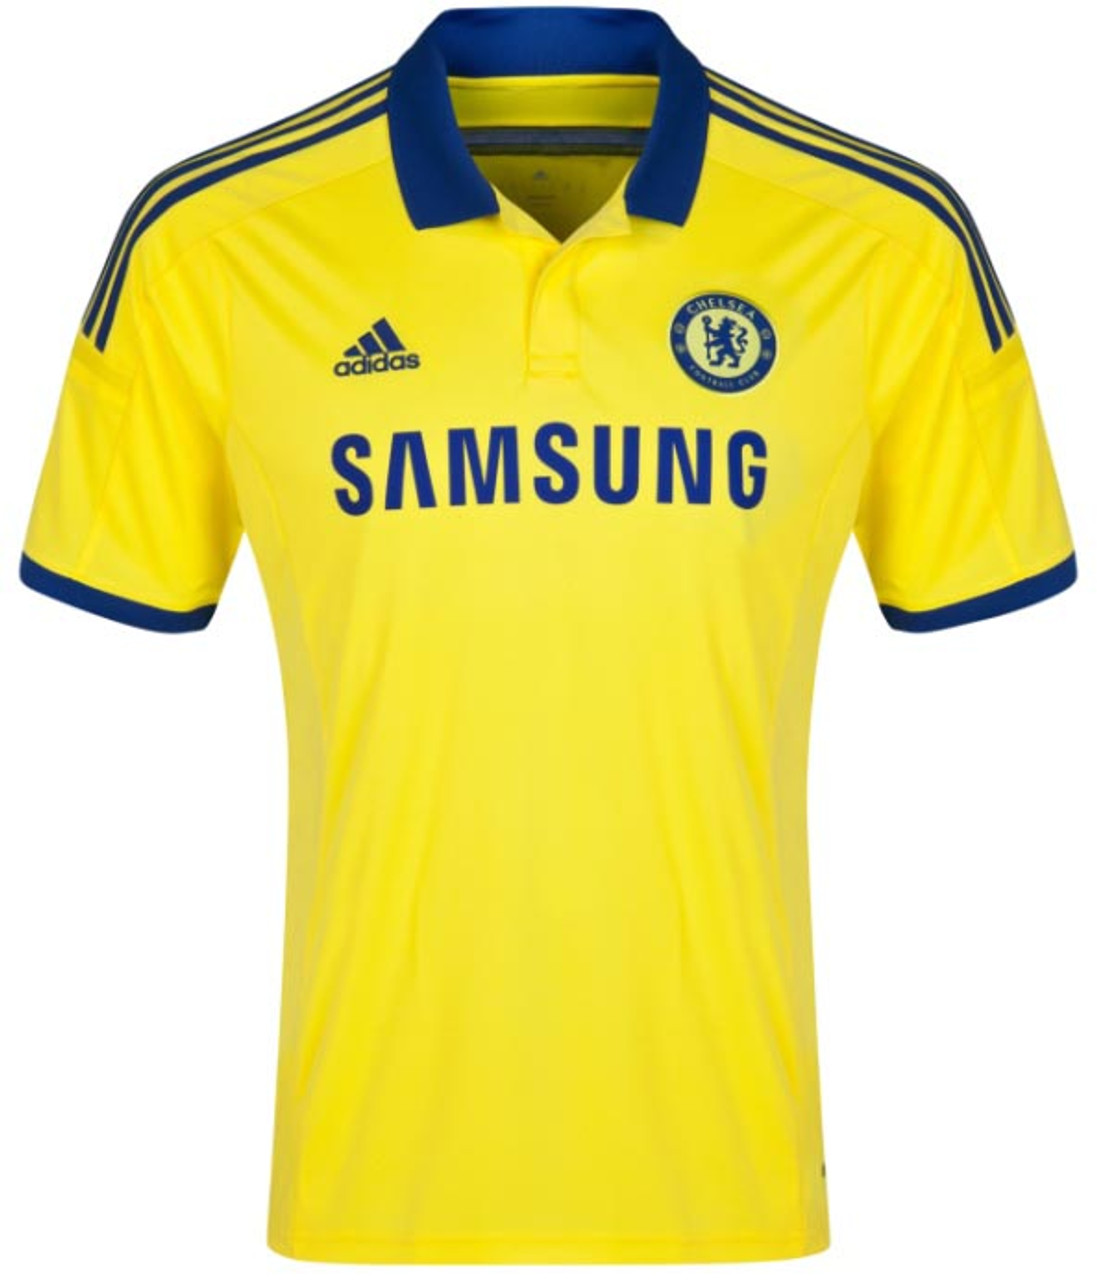 sale retailer df424 f1f48 ADIDAS CHELSEA 2015 AWAY JERSEY YELLOW